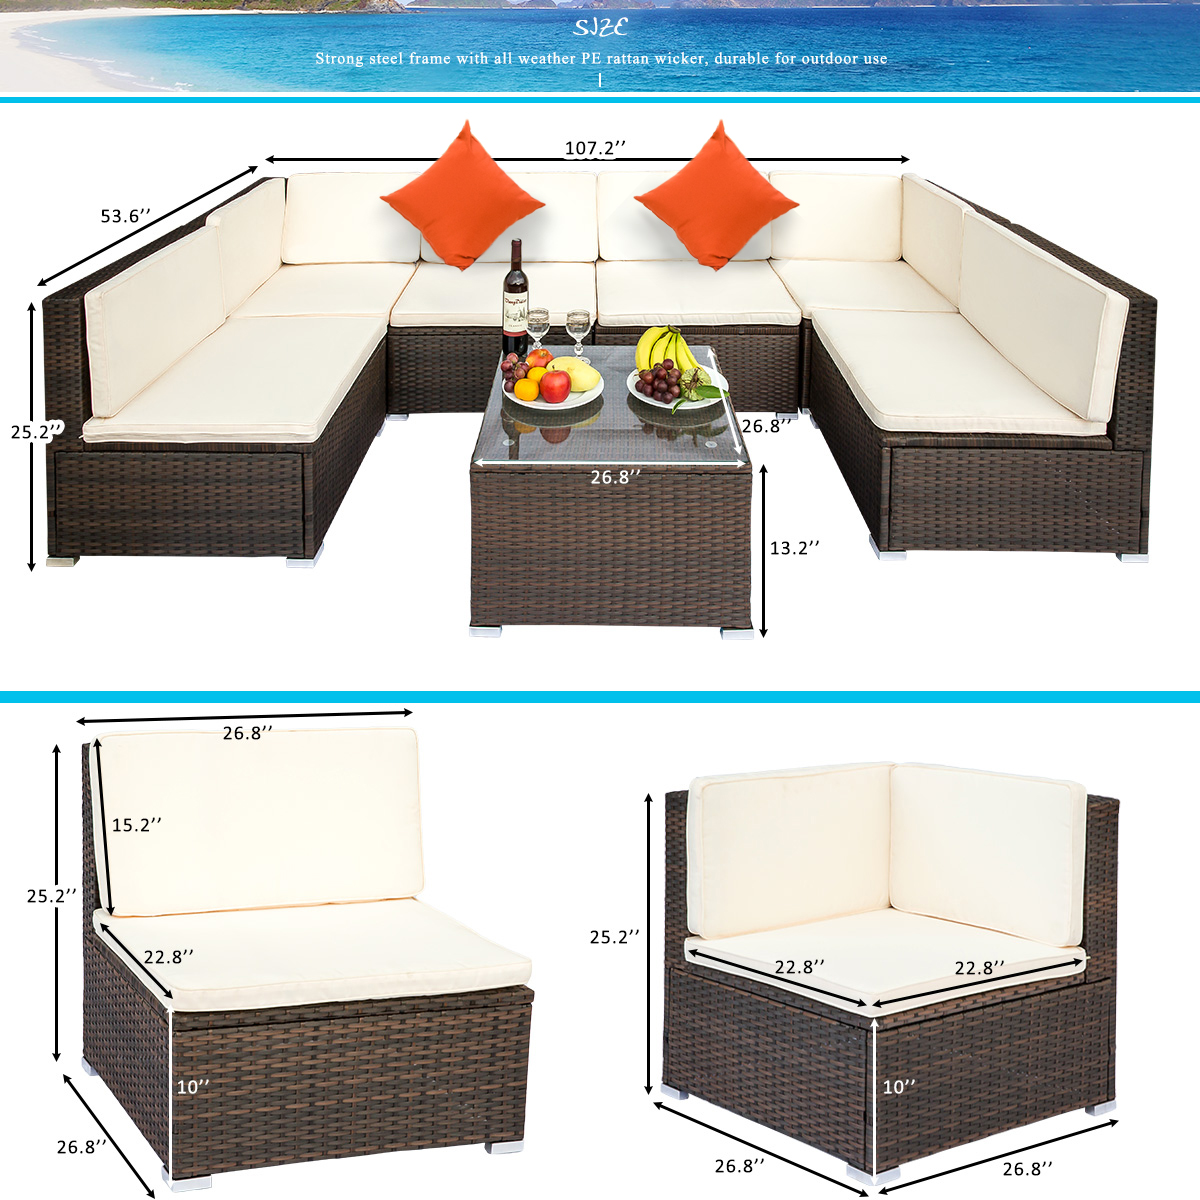 clearance patio table and chairs sets 7 piece wicker sofa patio conversation furniture set w 2 corner sofa tempered glass table 4 single sofa 12